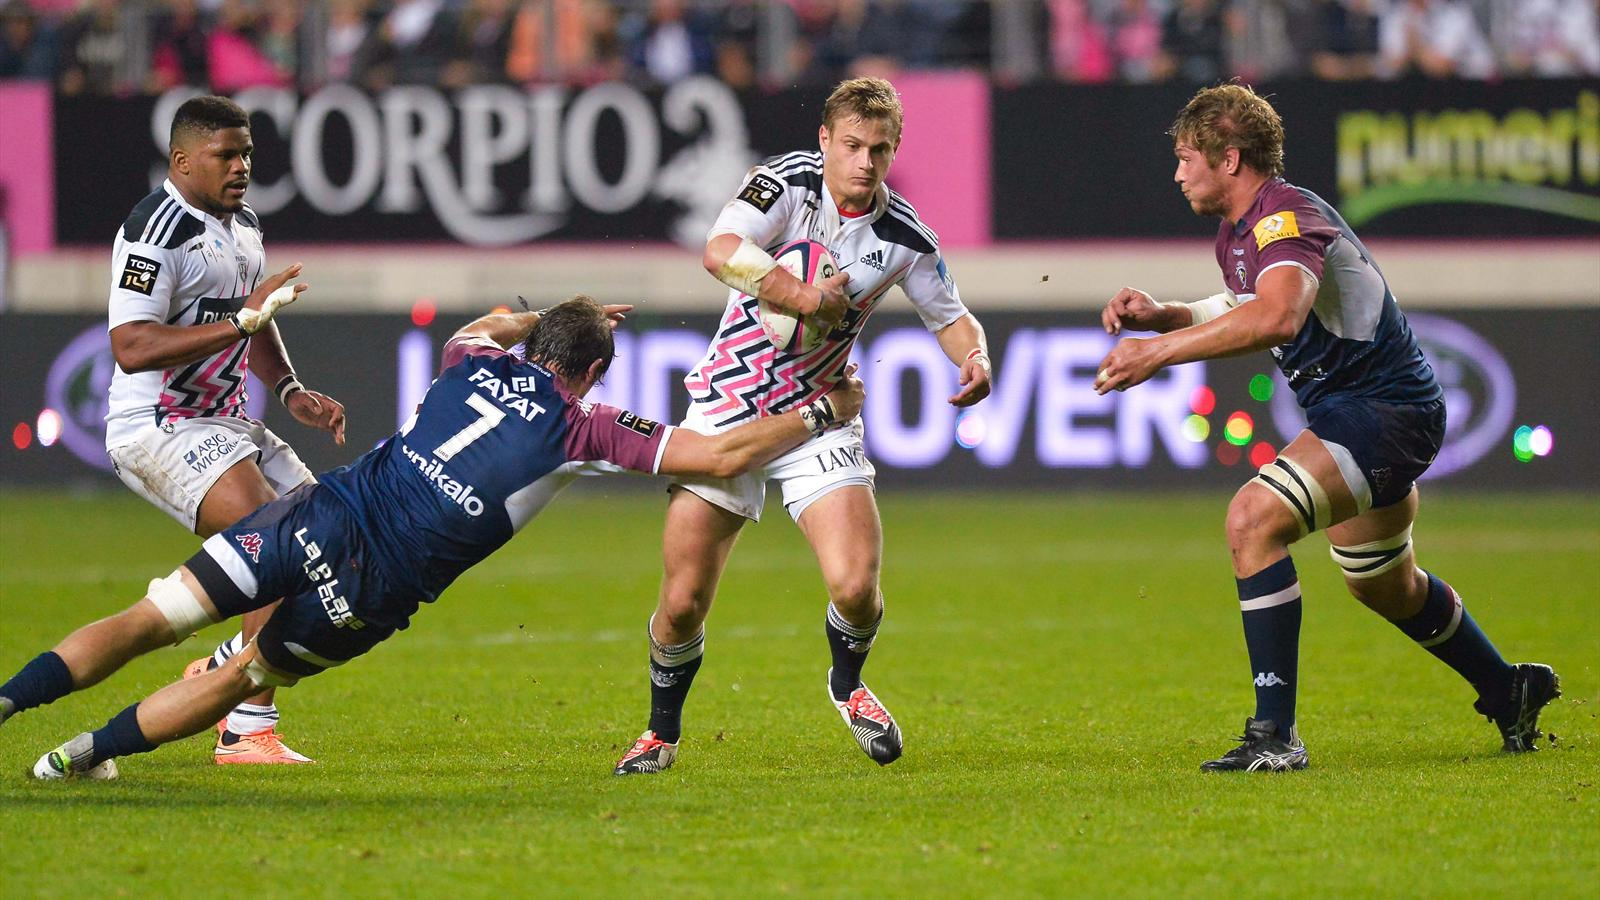 Rugby Top 14: Grenoble vs Stade Français en direct live streaming